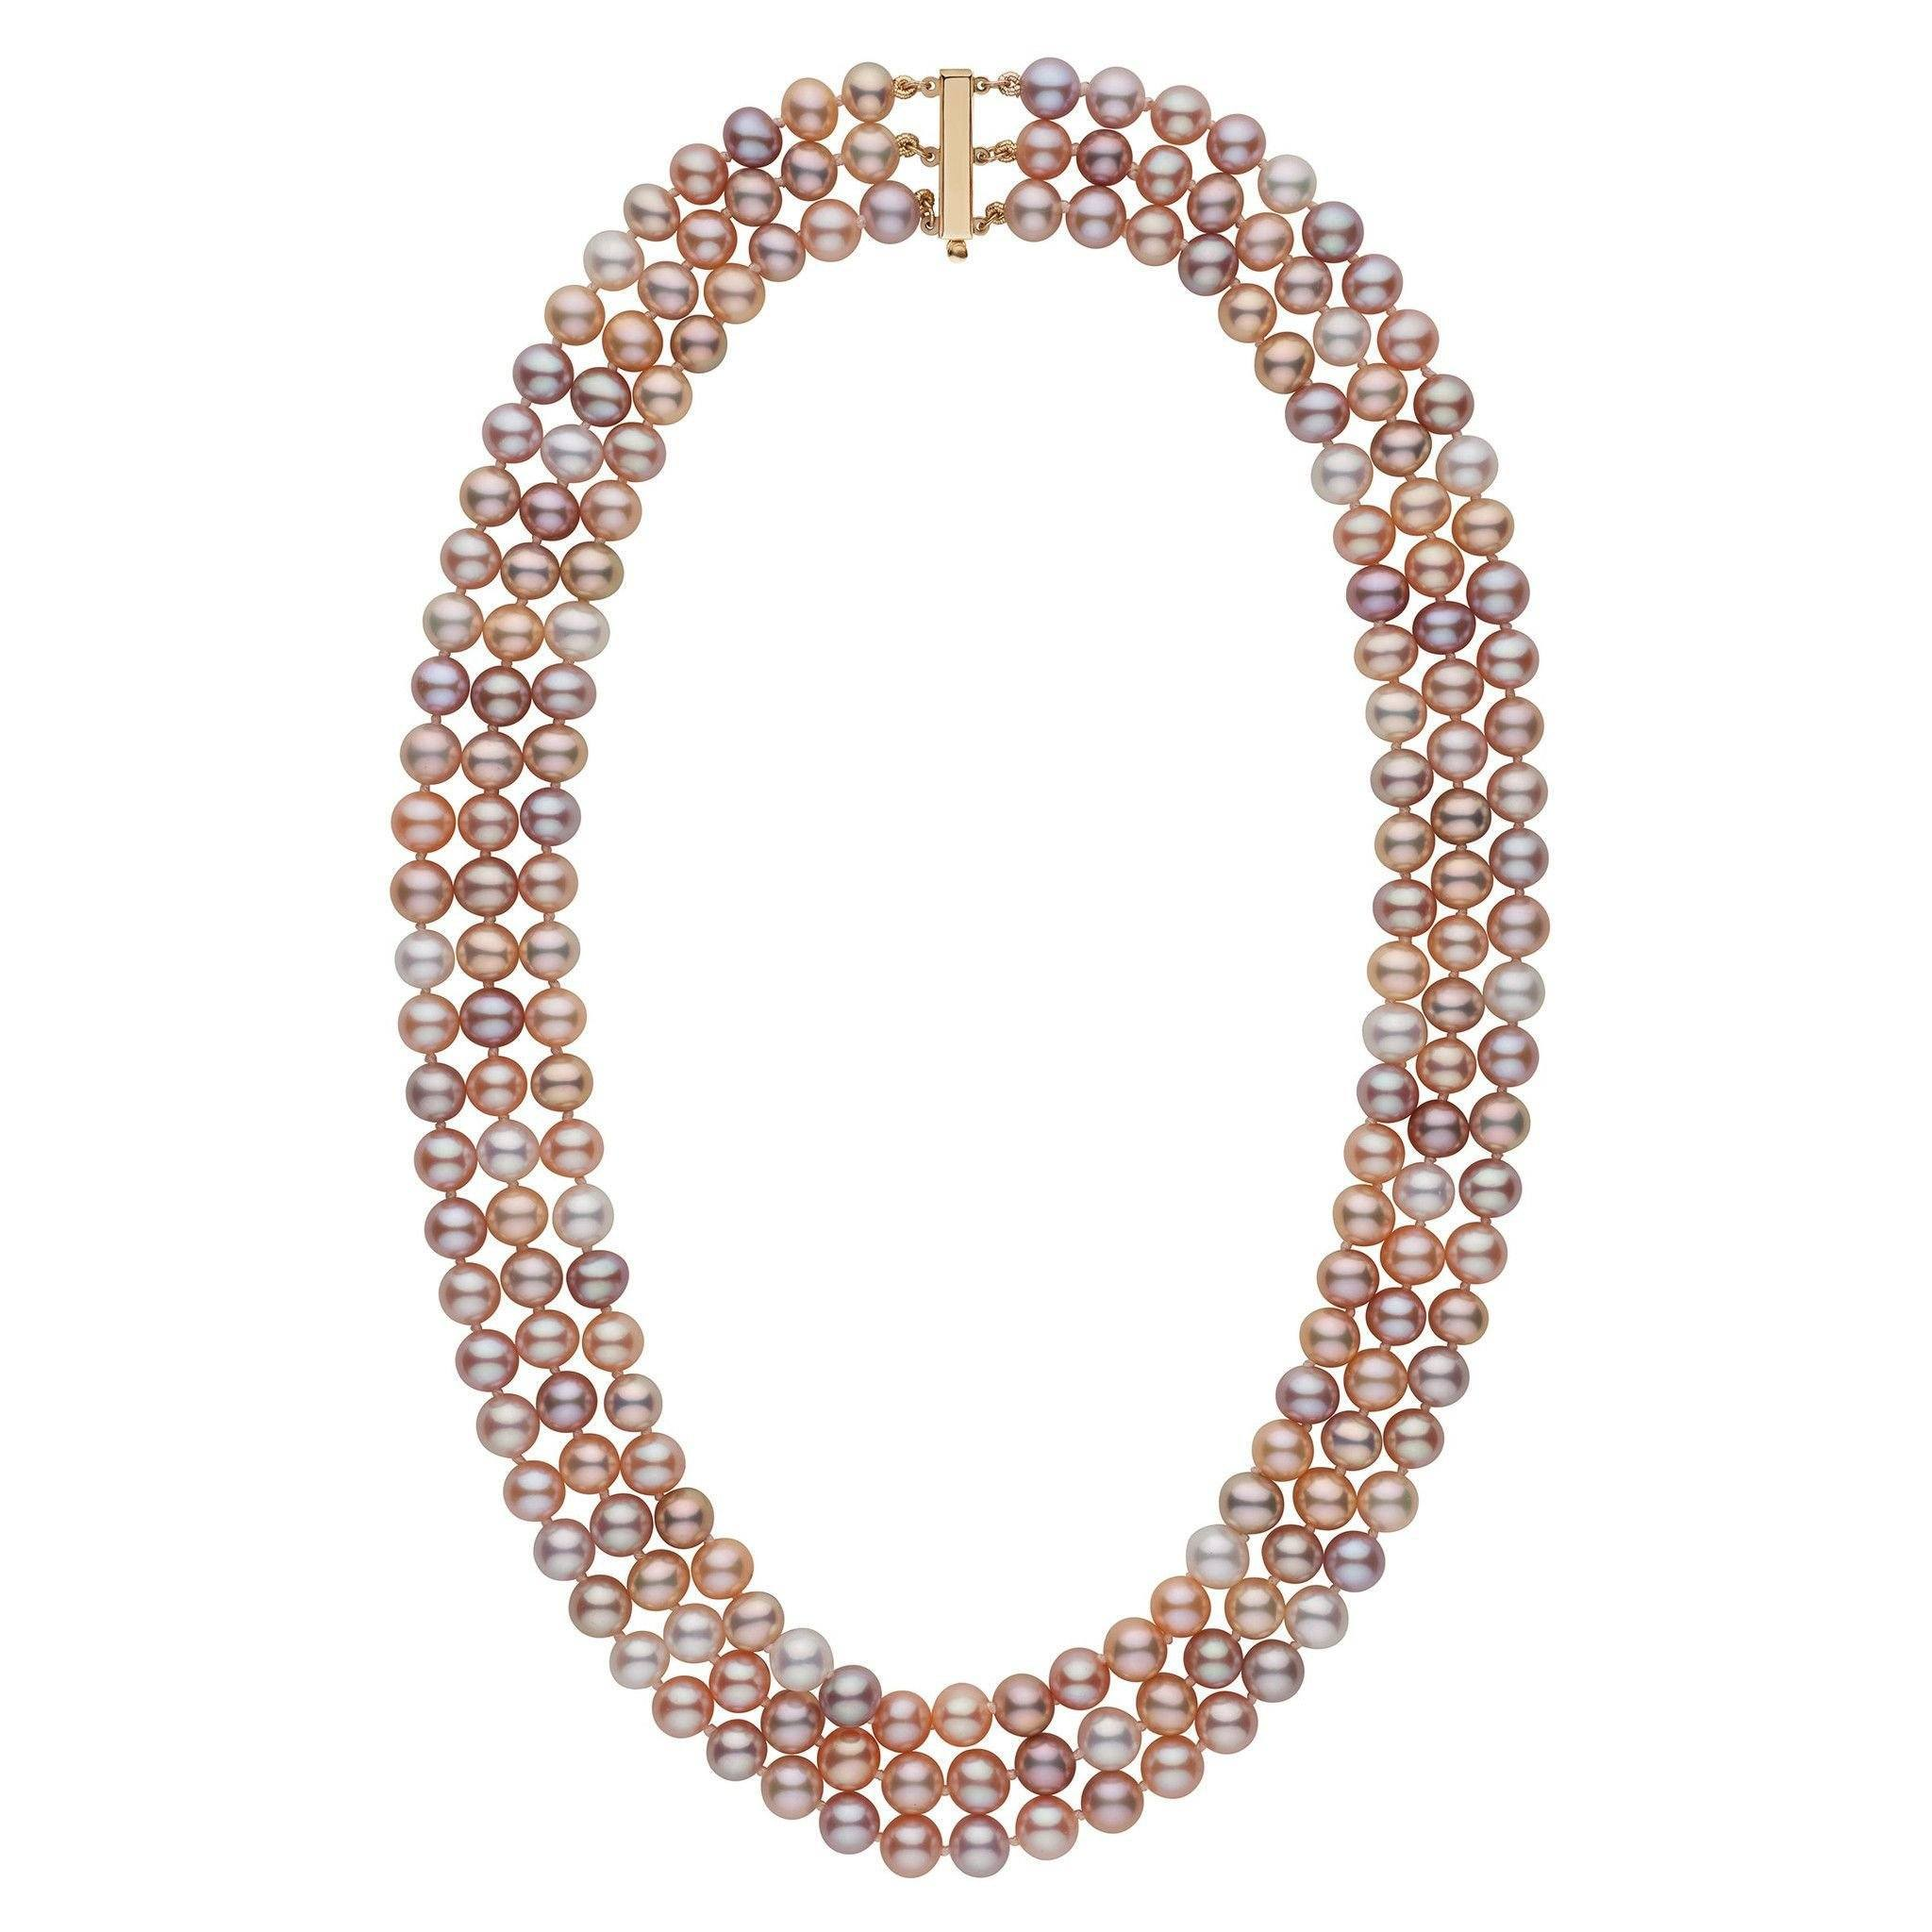 6.5-7.0 mm Triple-Strand AAA Multicolor Freshwater Cultured Pearl Necklace by Pearl Paradise